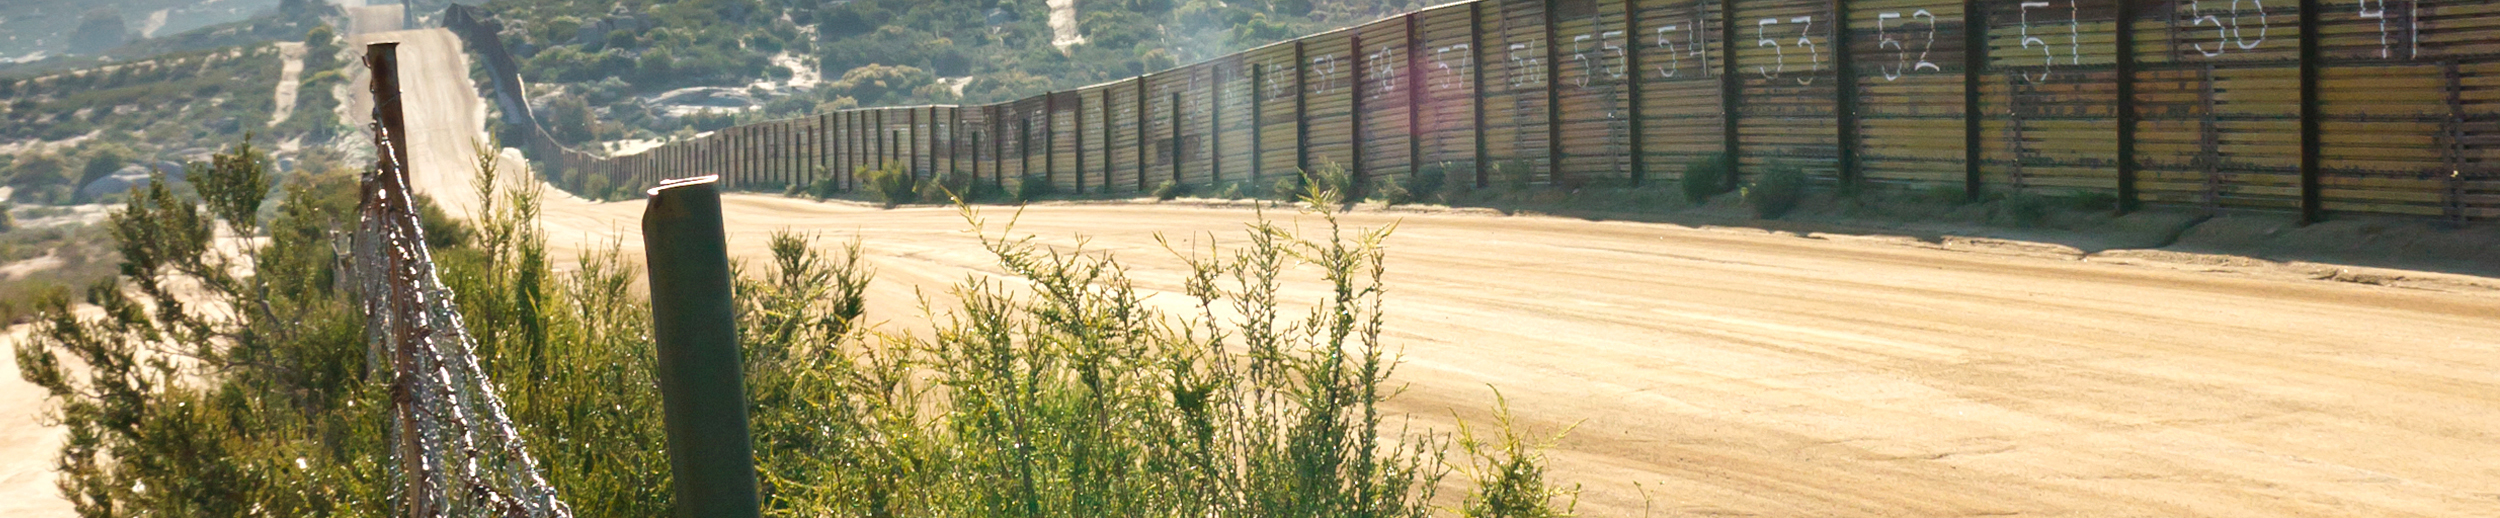 Opgal infrared surveillance cameras for border security